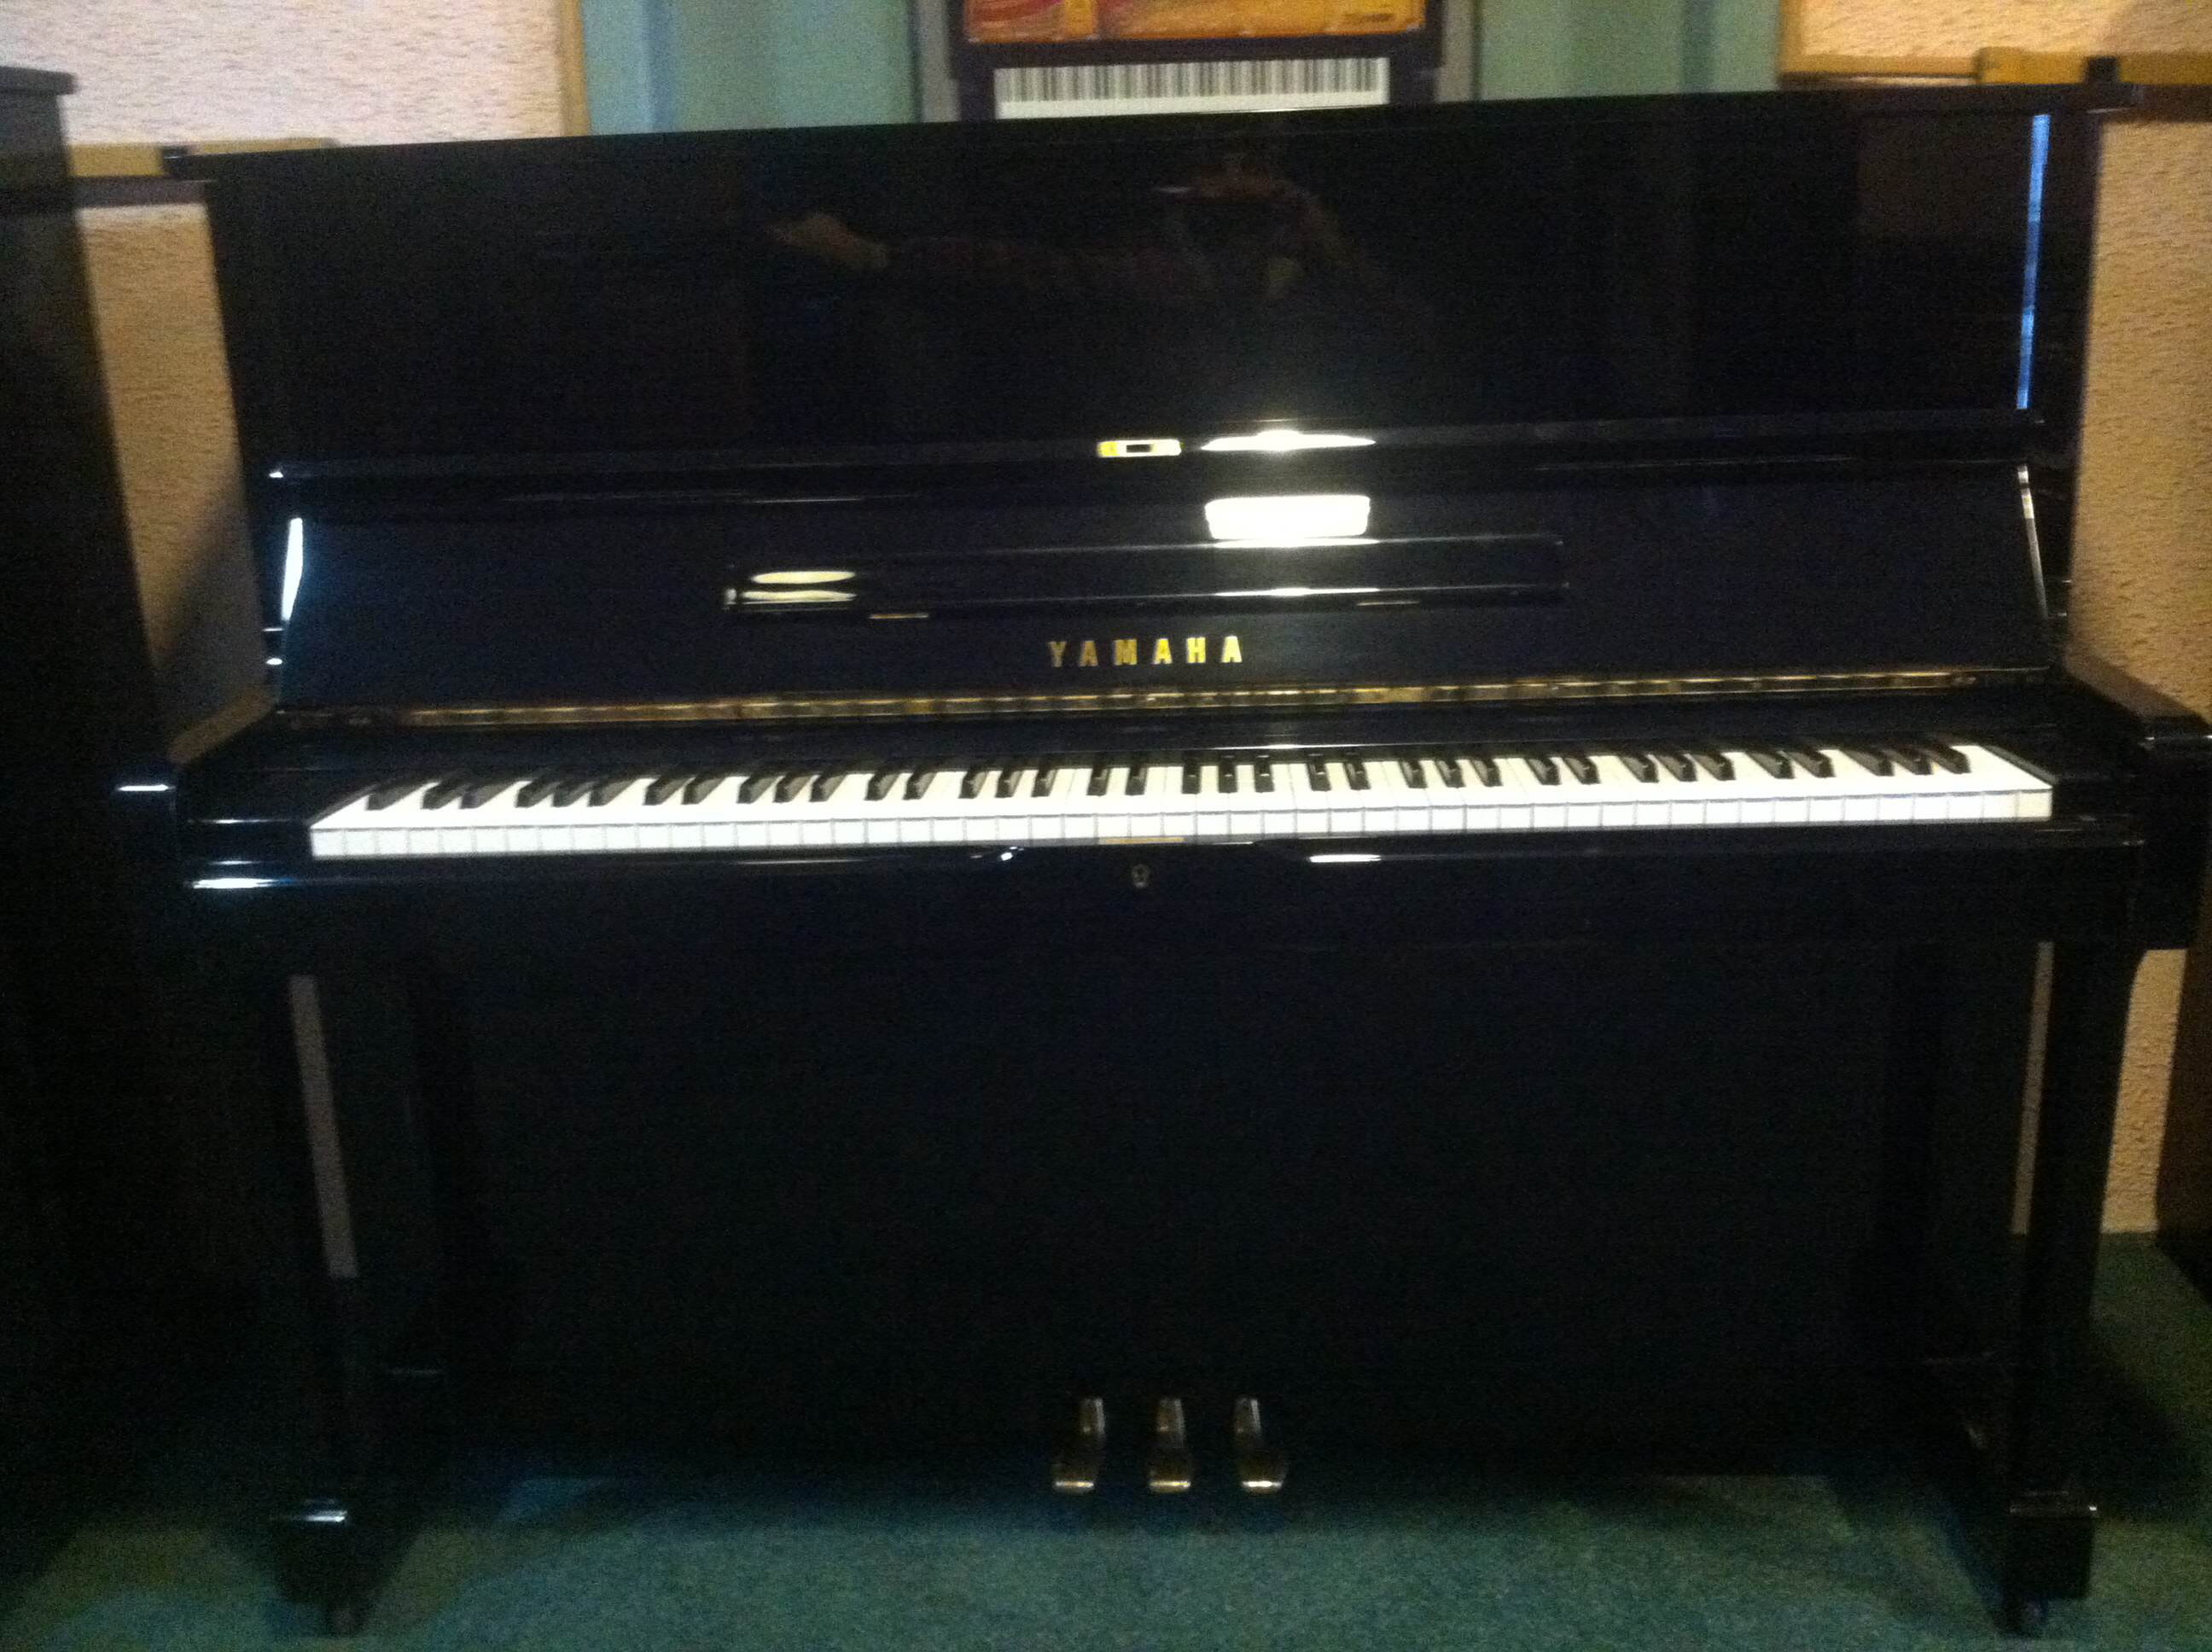 Yamaha u1 studio upright vienna piano for Yamaha piano upright